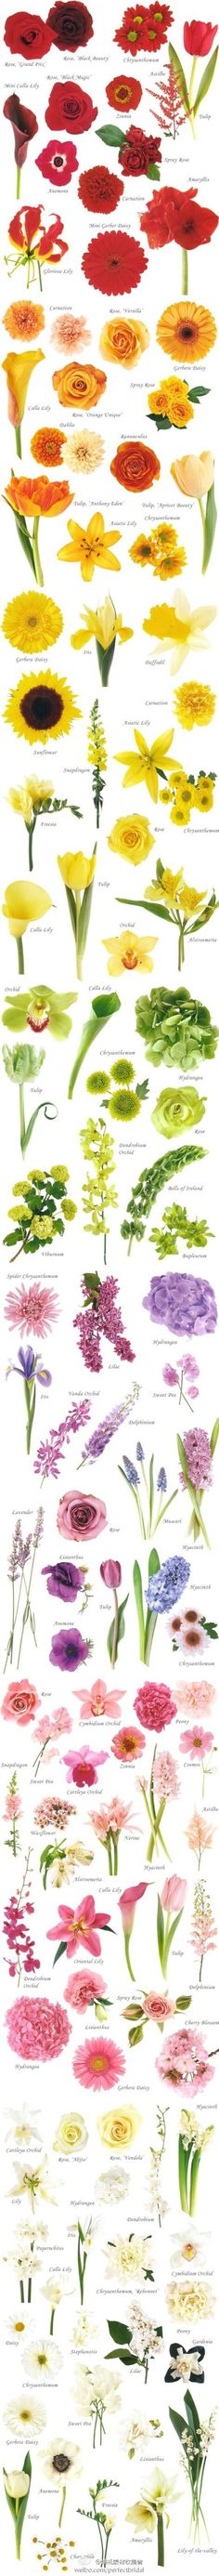 Flower Chart for the bouquet